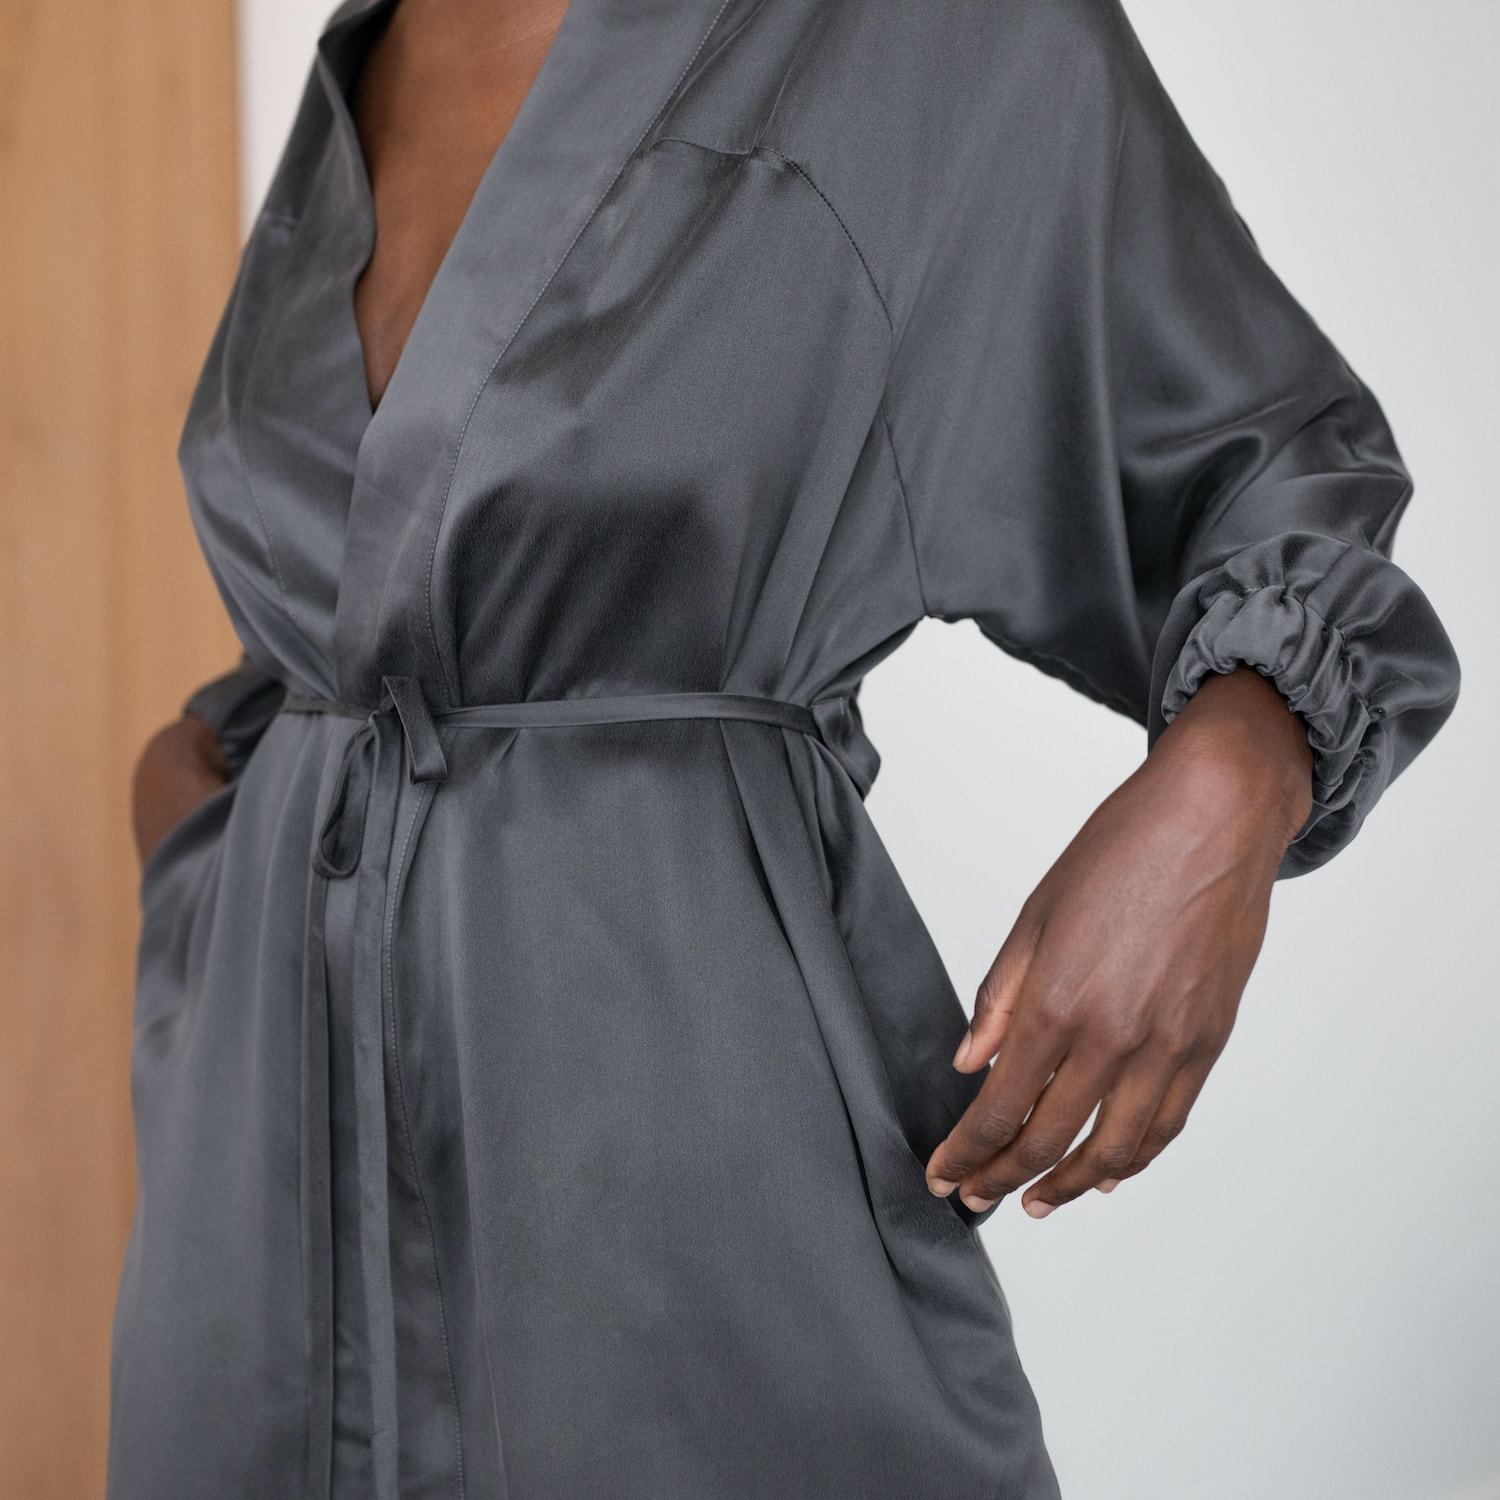 Lunya Sleepwear Washable Silk Robe - #Eclipse